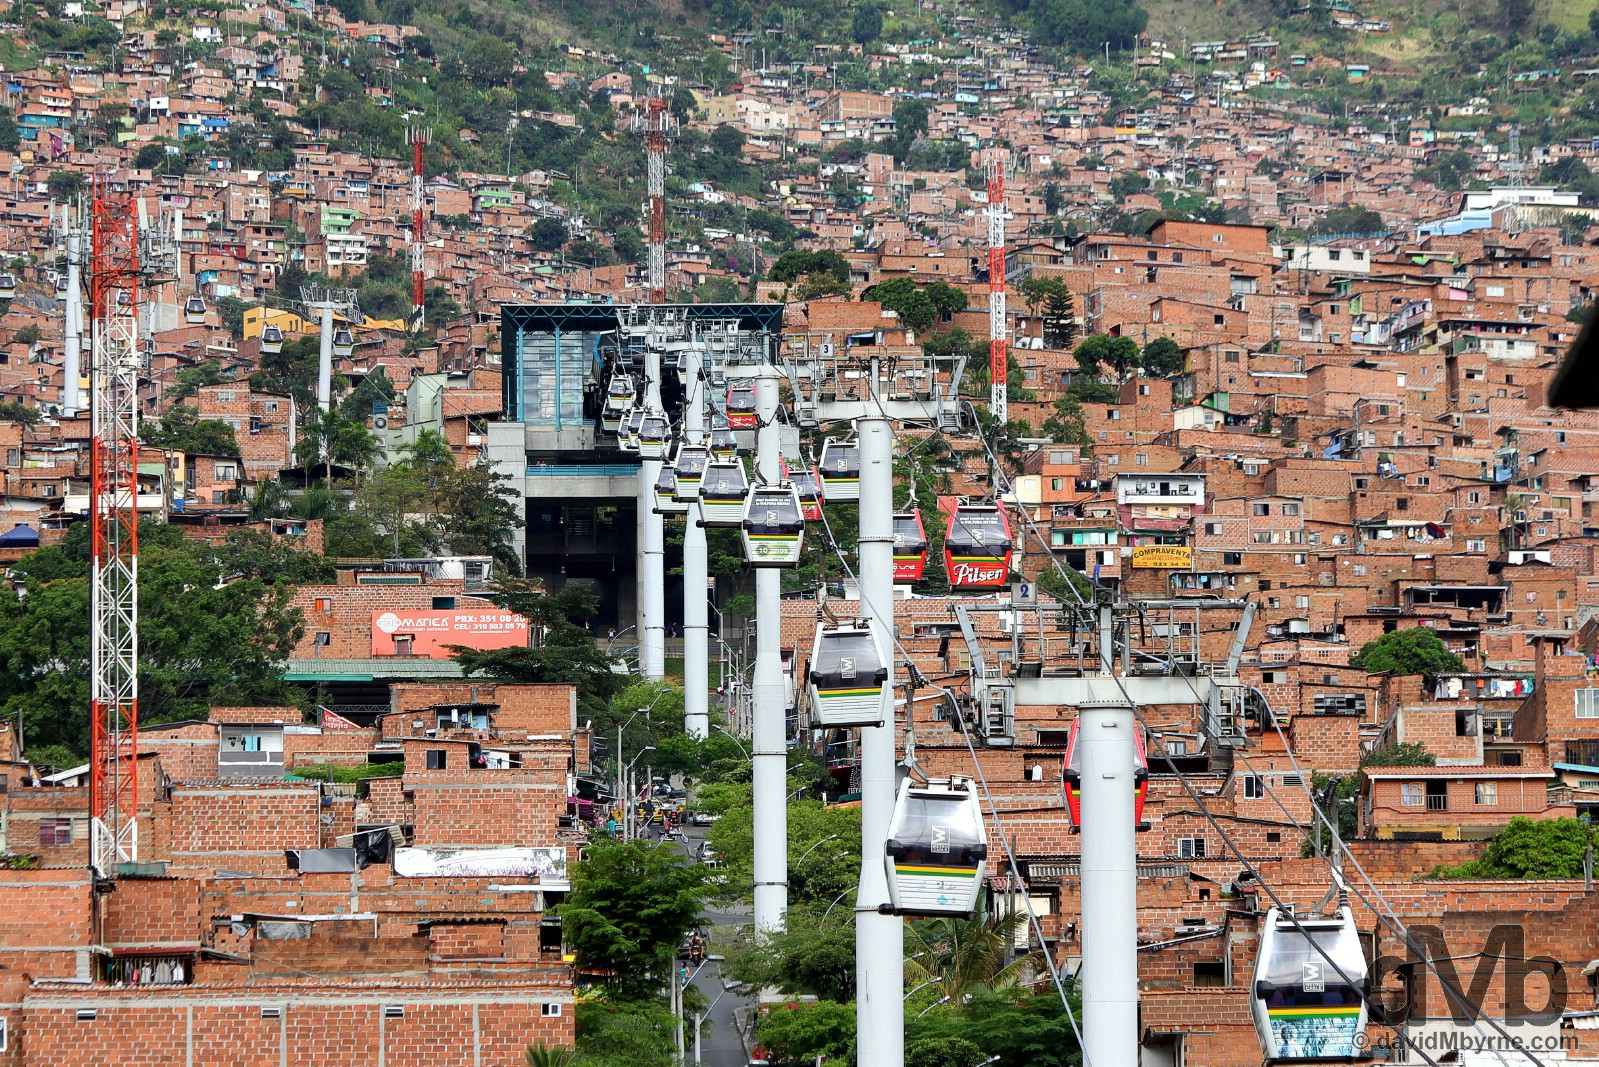 A section of the Metrocable & distinctive redbrick hillside buildings in Medellin, Colombia. June 27, 2015.